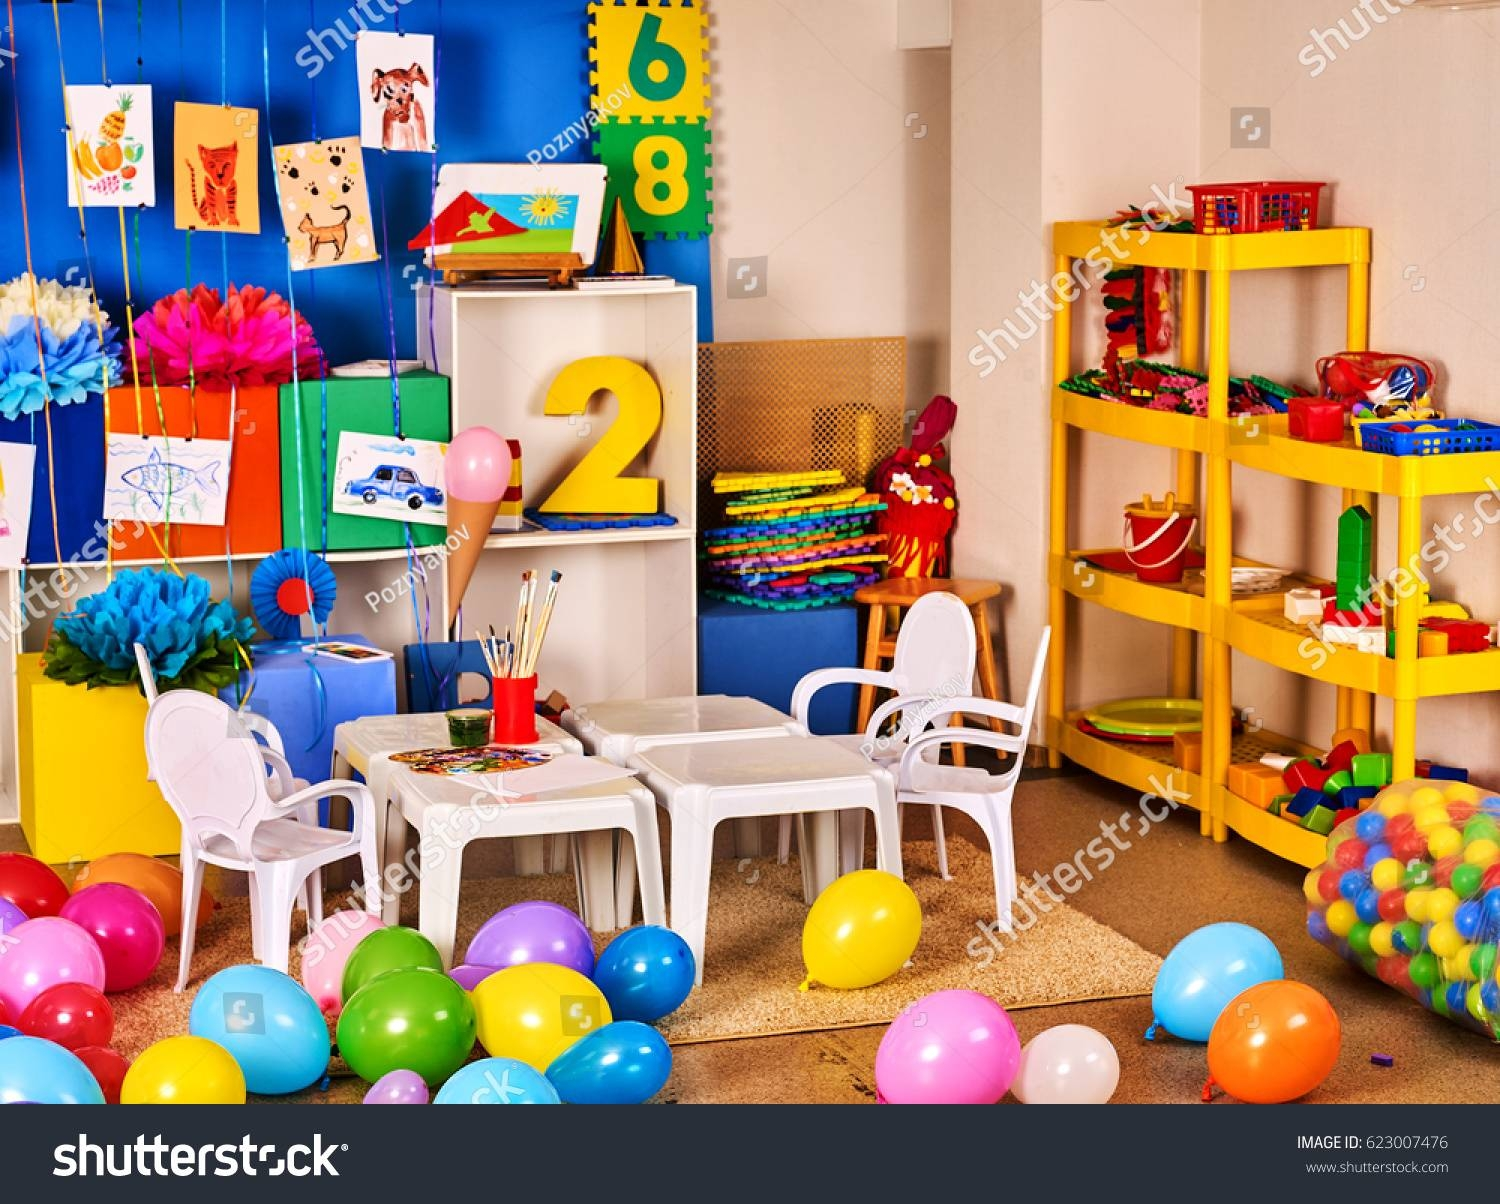 Kindergarten Interior Decoration Child Picture Wall Stock Photo Regarding Newest Preschool Wall Decoration (Gallery 16 of 30)